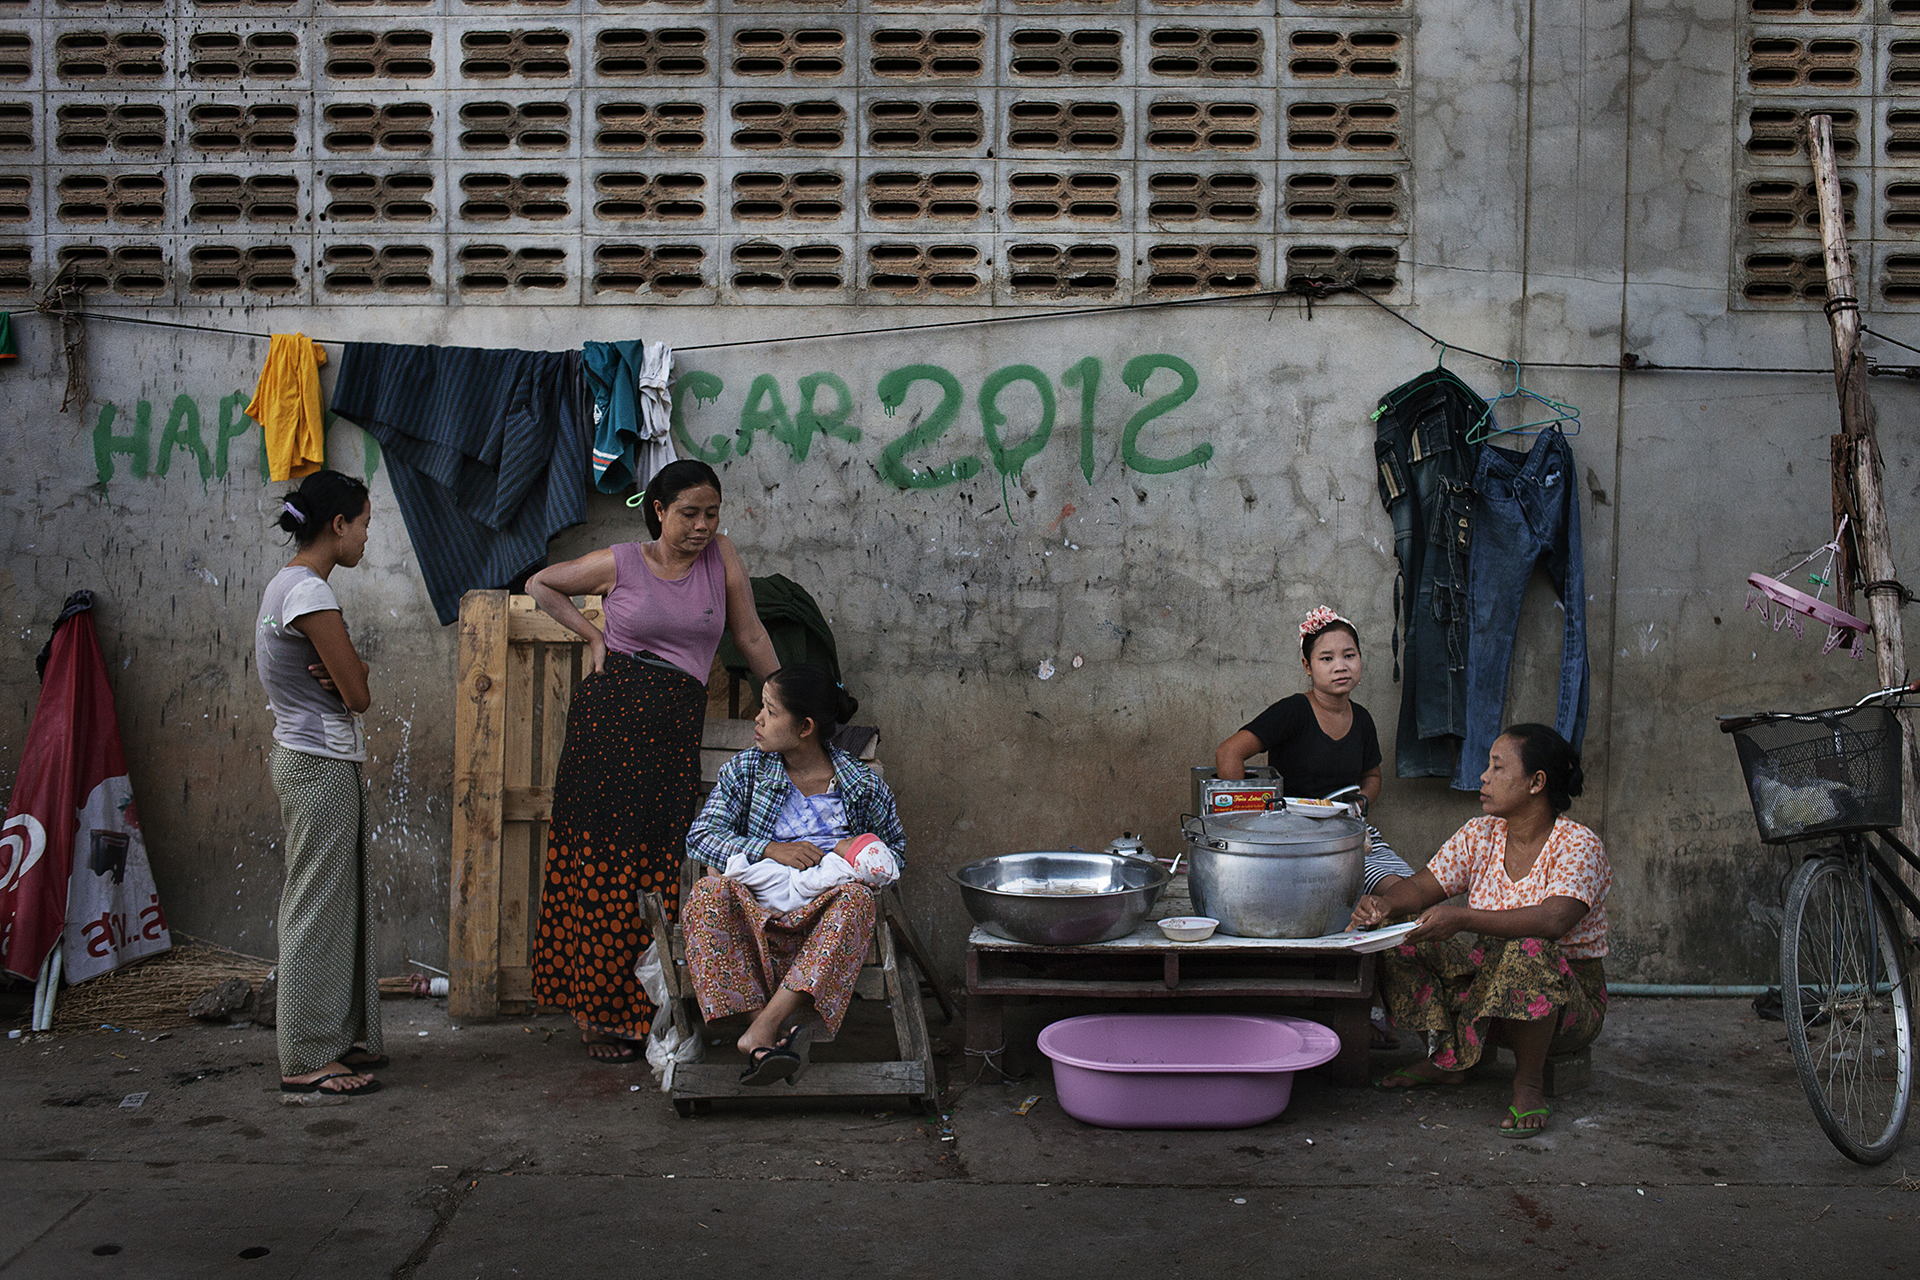 Des jeunes femmes pendant leur pause dans l'usine qui les emploie. Ces ouvrières travaillent 12 heures par jour en moyenne, 7 jours sur 7. Ces usines emploient exclusivement des Birmans. Mae Sot, Thaïlande, novembre 2013Migrant workers in Mae Sot have a break at the factory they work in. They work 12 hours per day, and seven days a week.Burmese are often employed as cheap labor in Thailand. Absence of rights lead to a high risk of extortion, arbitrary detention, forced labour and physical abuses.